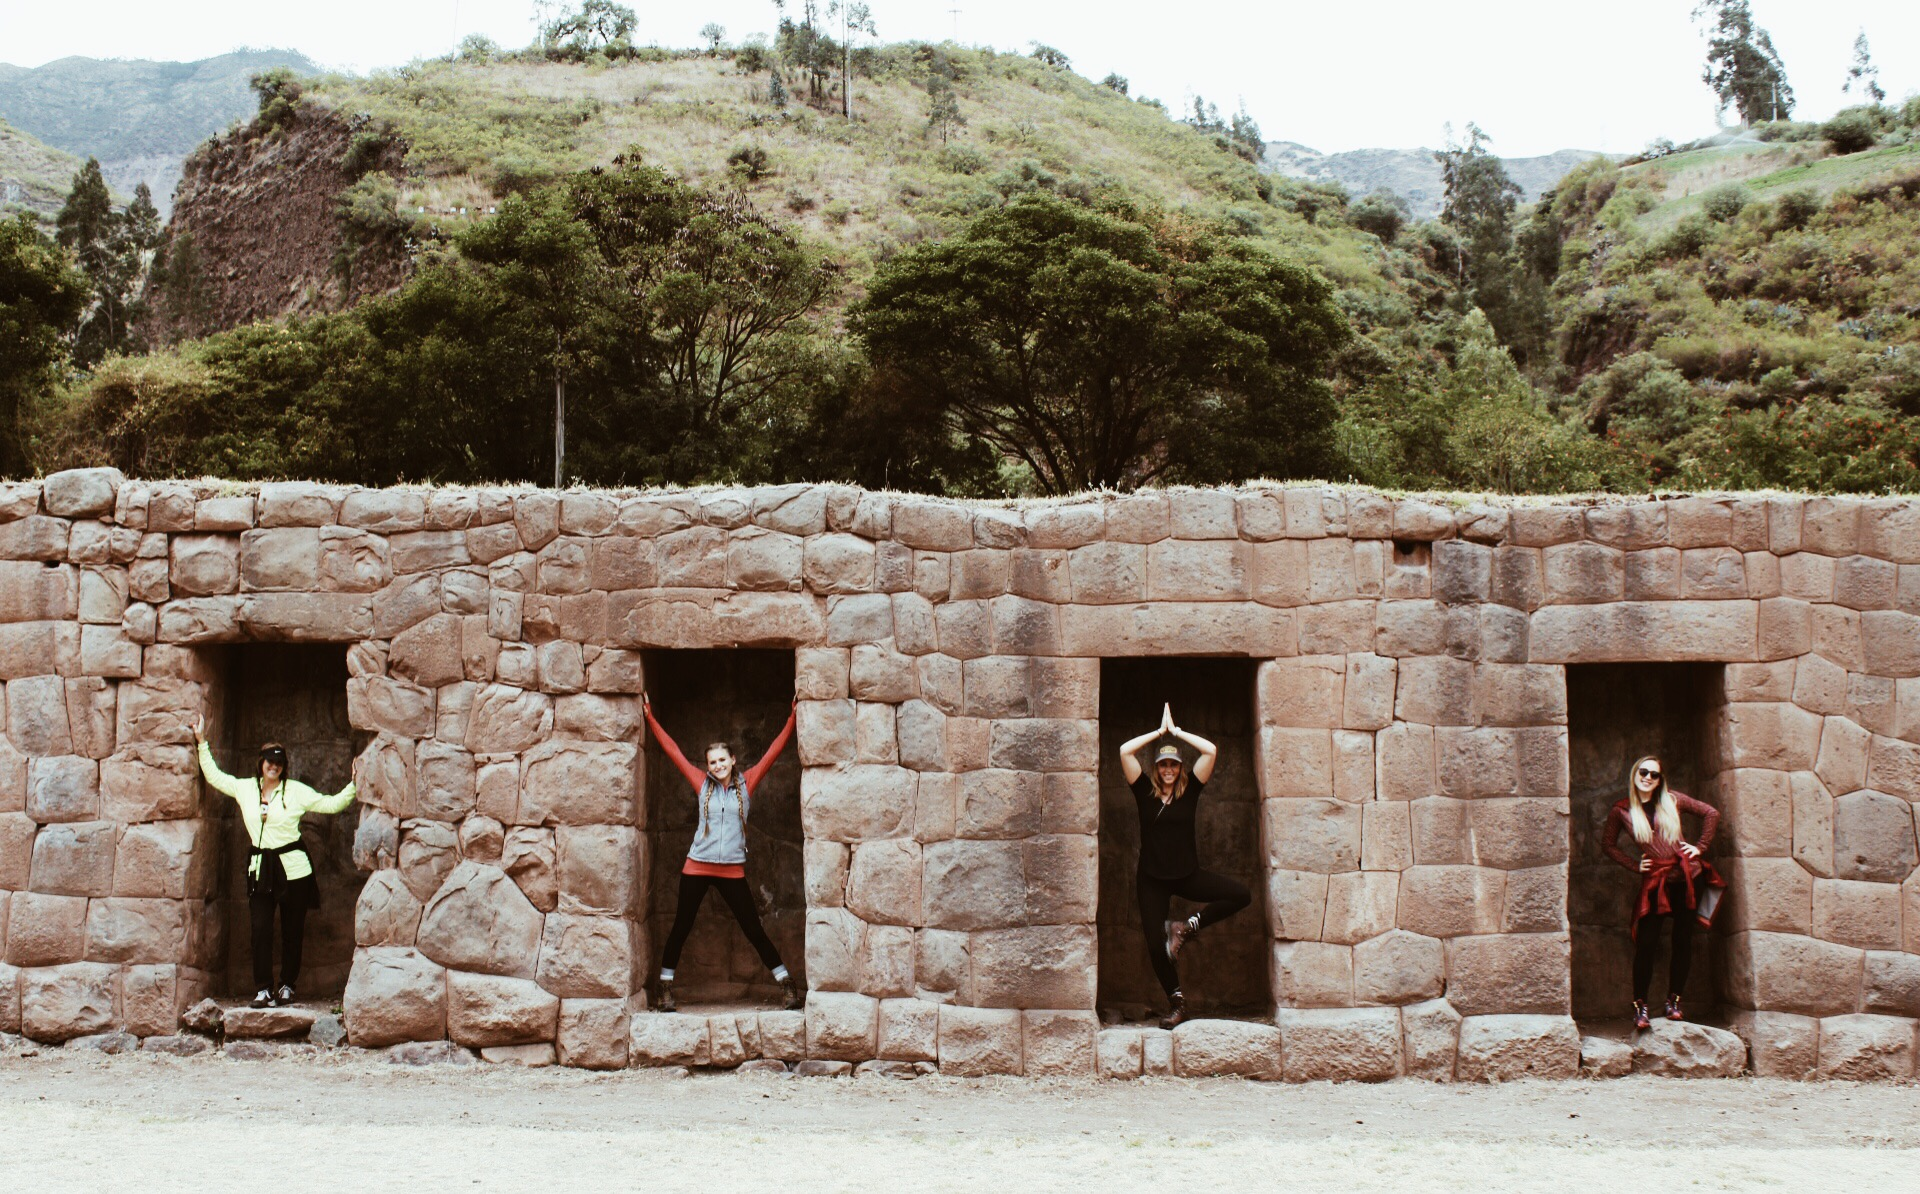 {how to spot Incan arcitechure from a mile away - trapezoidal doorways, no mortar, perfectly cut stone}